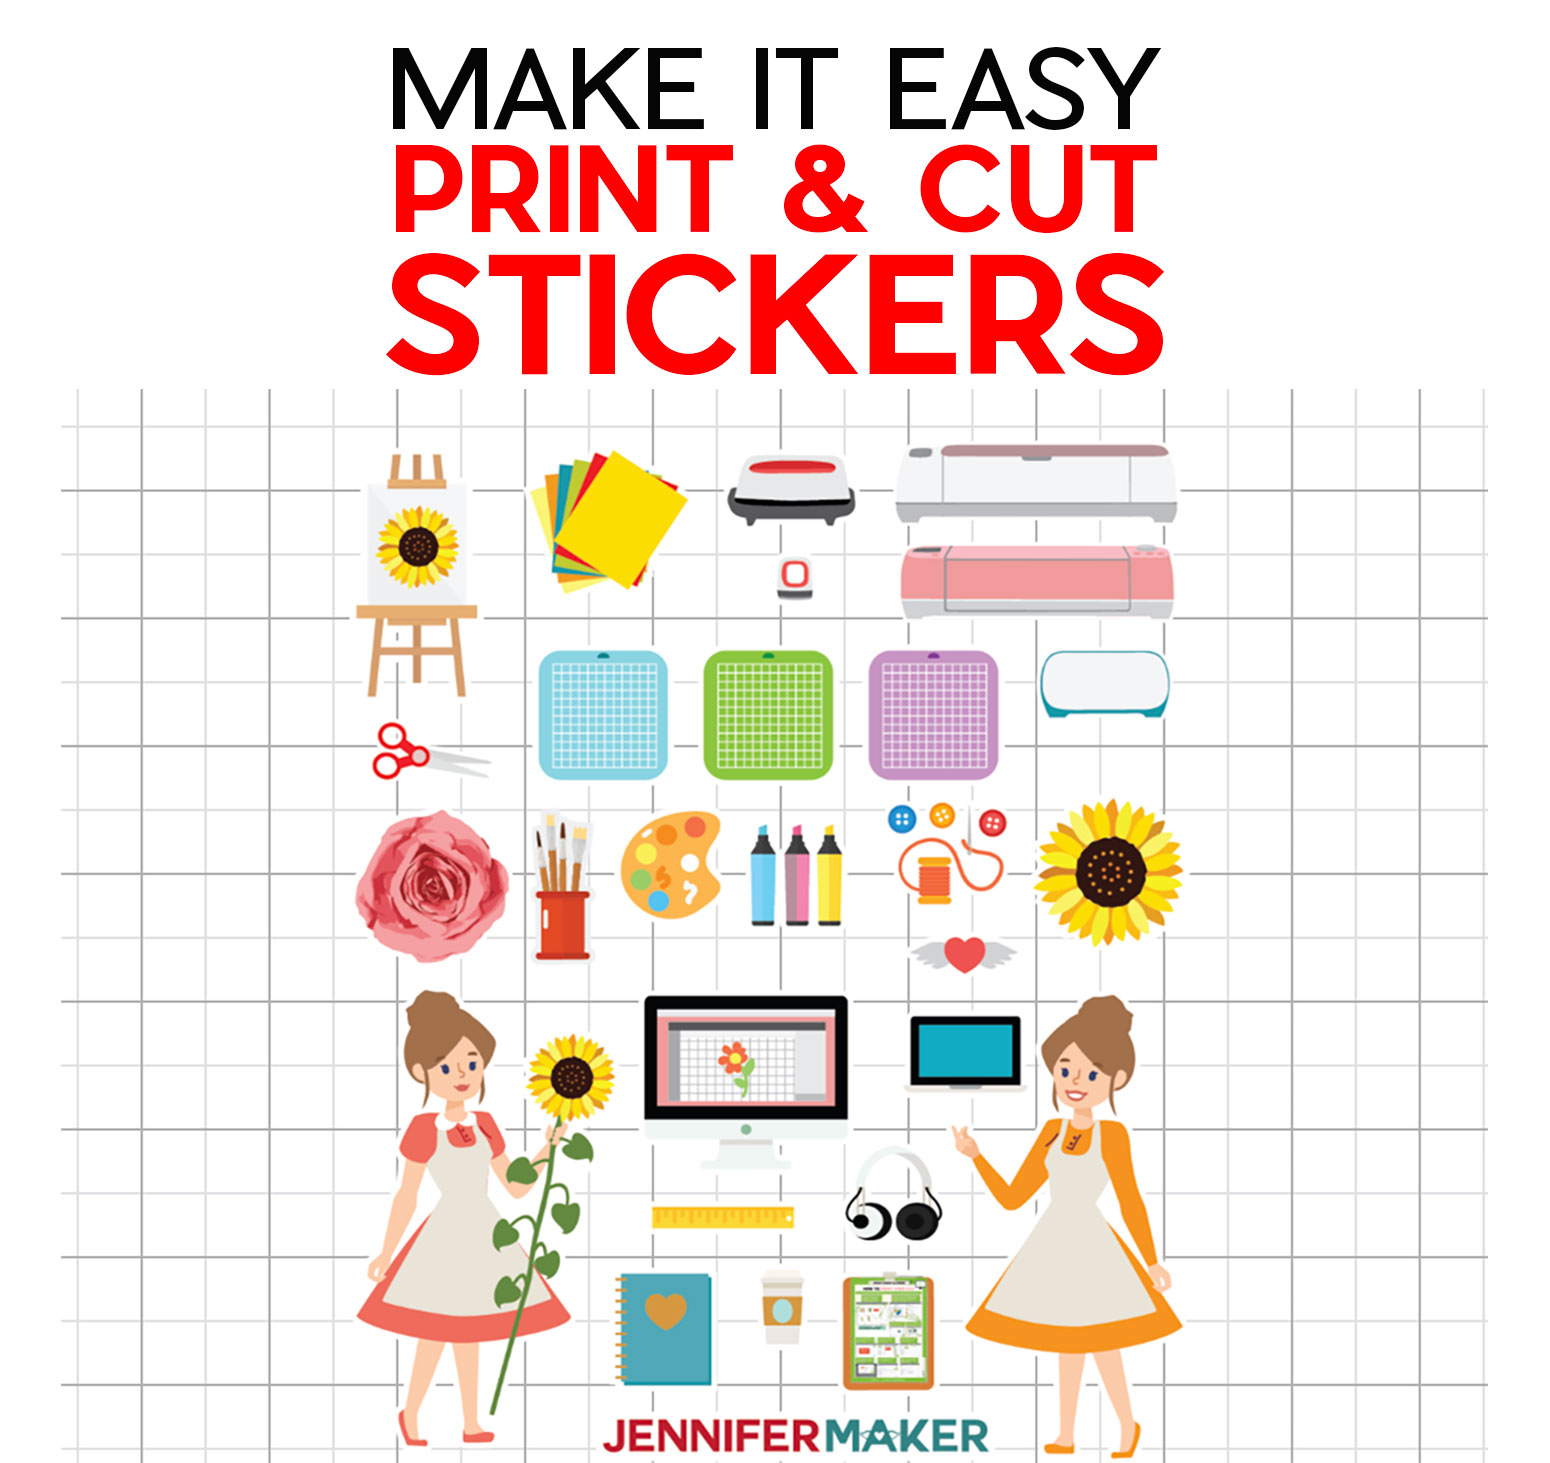 Easy Print & Cut Stickers Made on a Cricut!